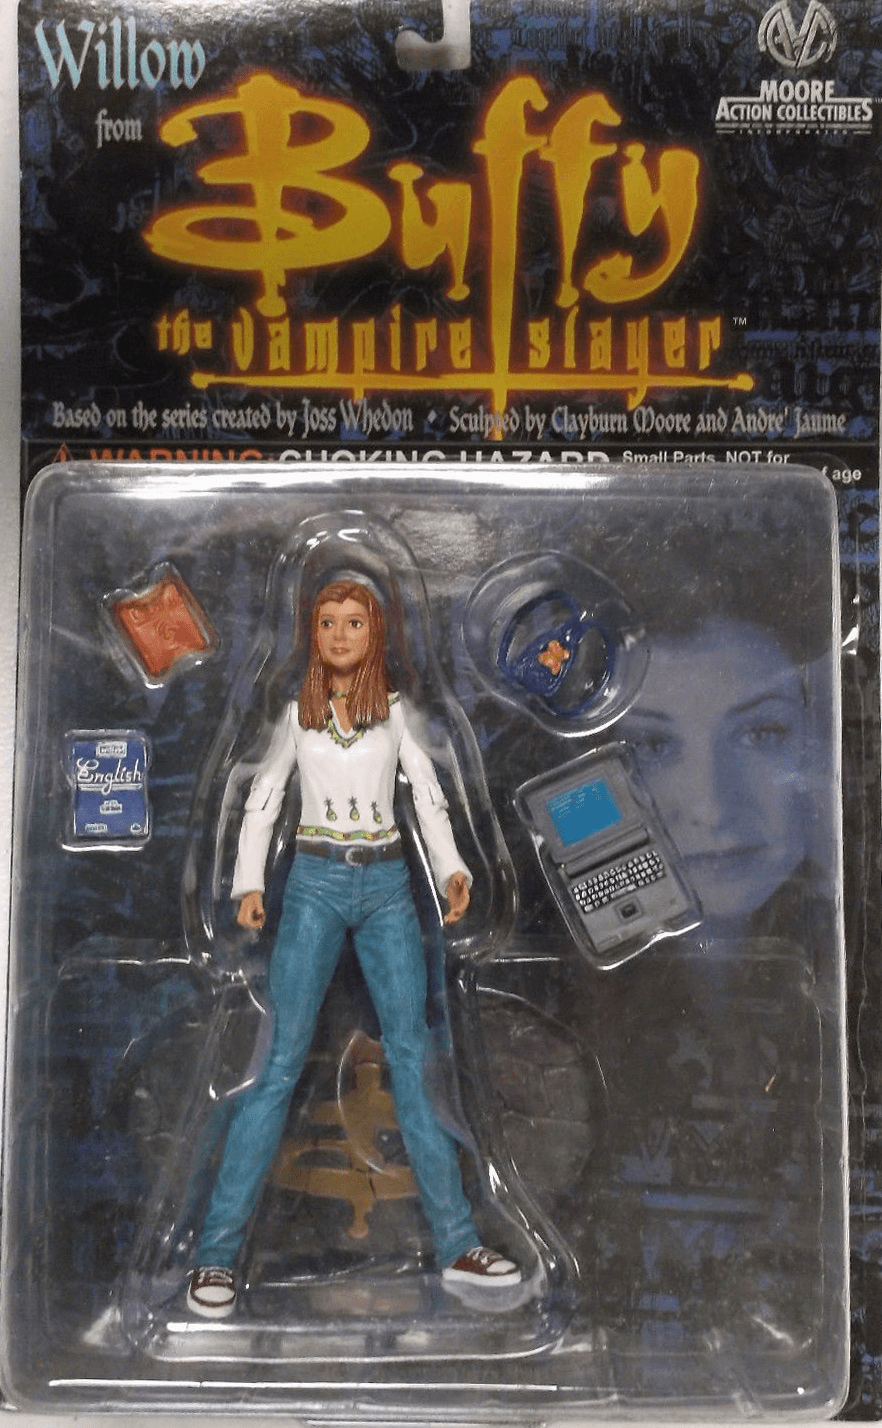 Moore Action Collectibles Buffy The Vampire Slayer Willow Figure